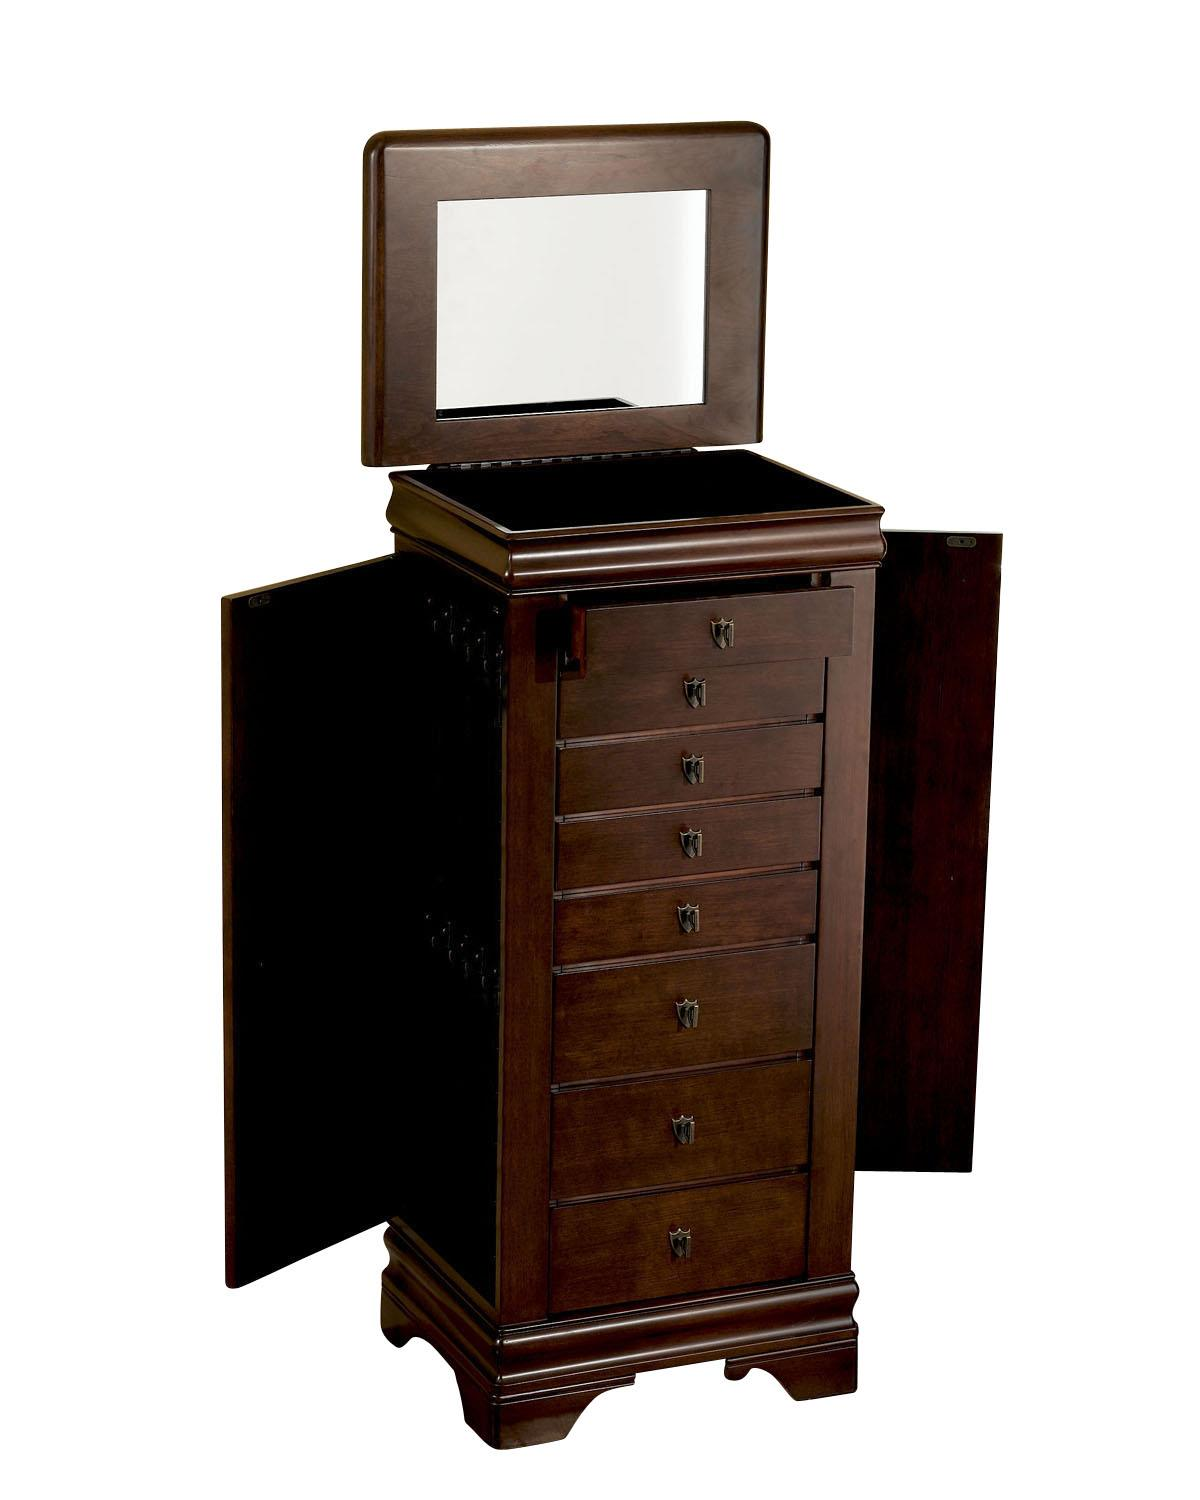 "Powell Jewelry Armoire Louis Phillipe ""Marquis Cherry"" Jewelry Armo - Item Number: 508-315"